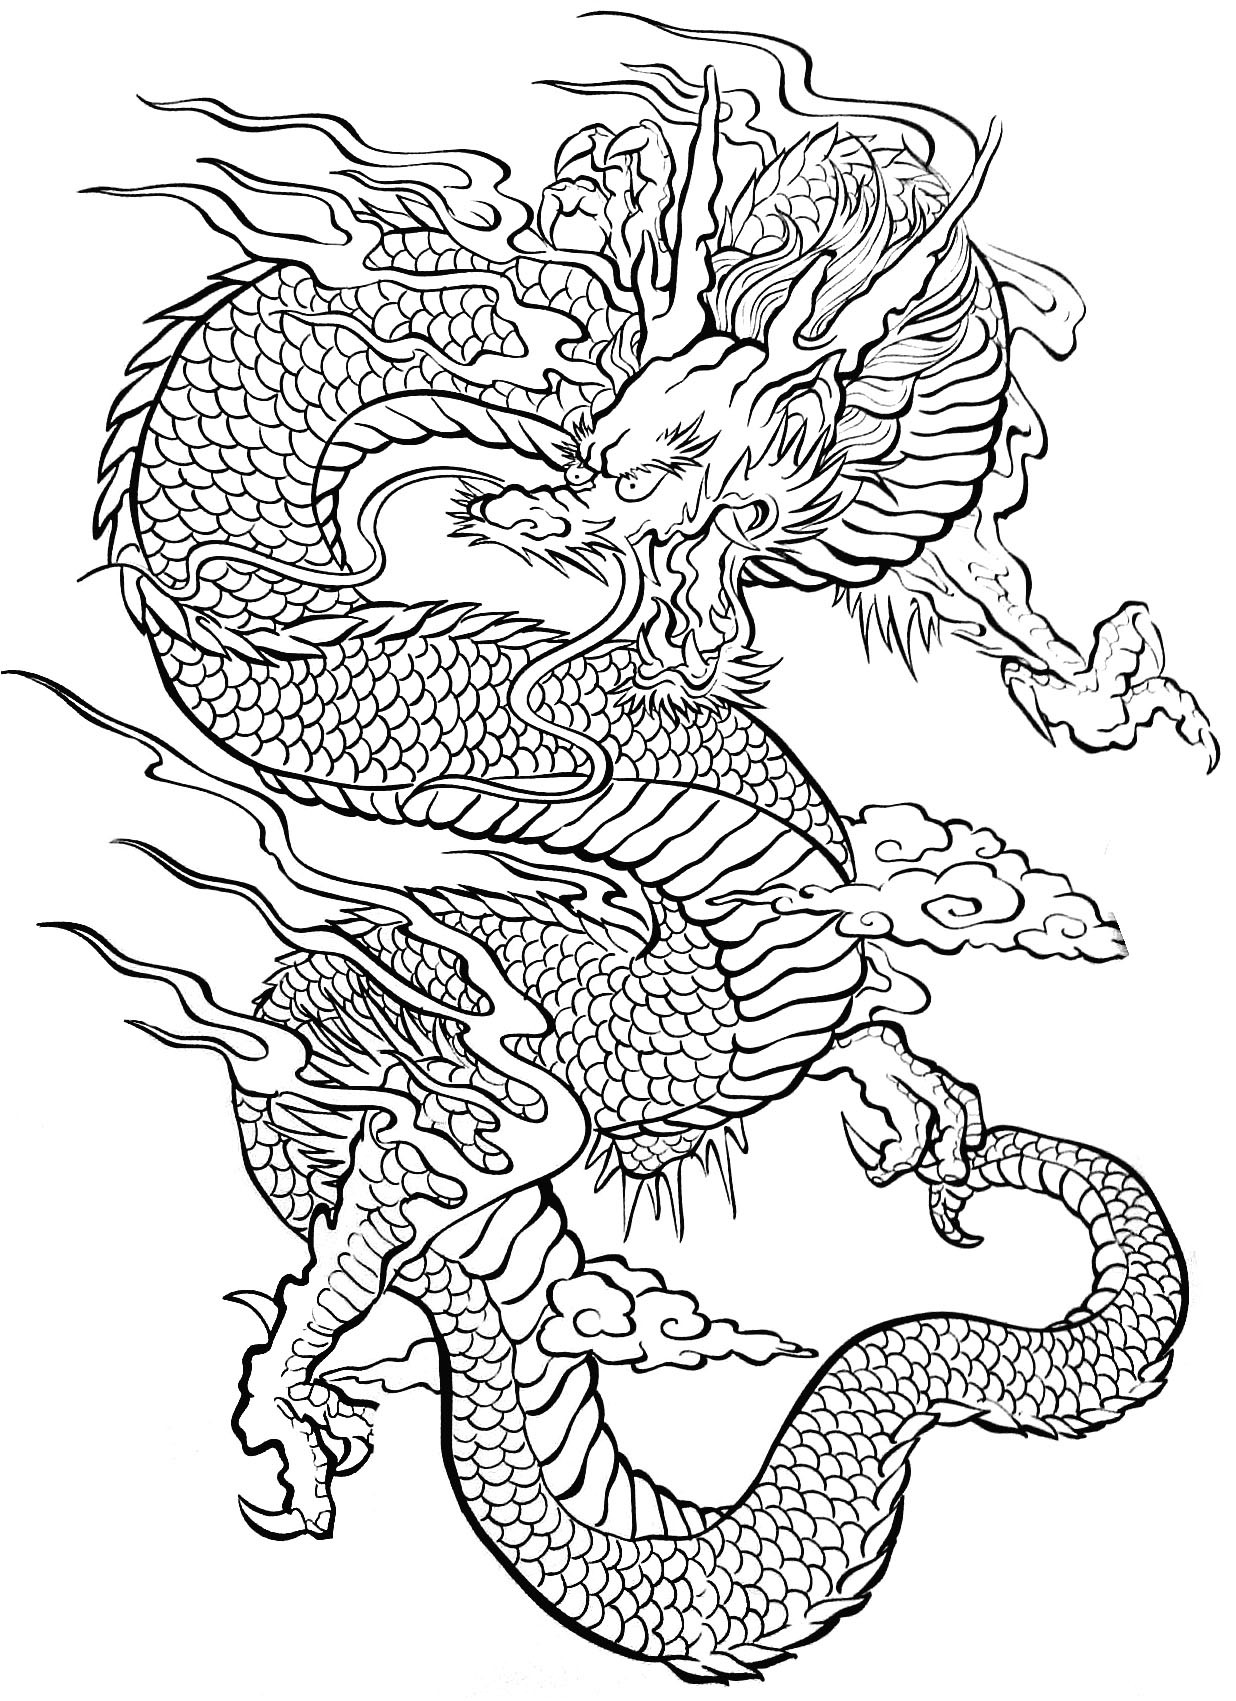 Coloring Pages For Adults Dragon  Tattoo dragon Tattoos Adult Coloring Pages